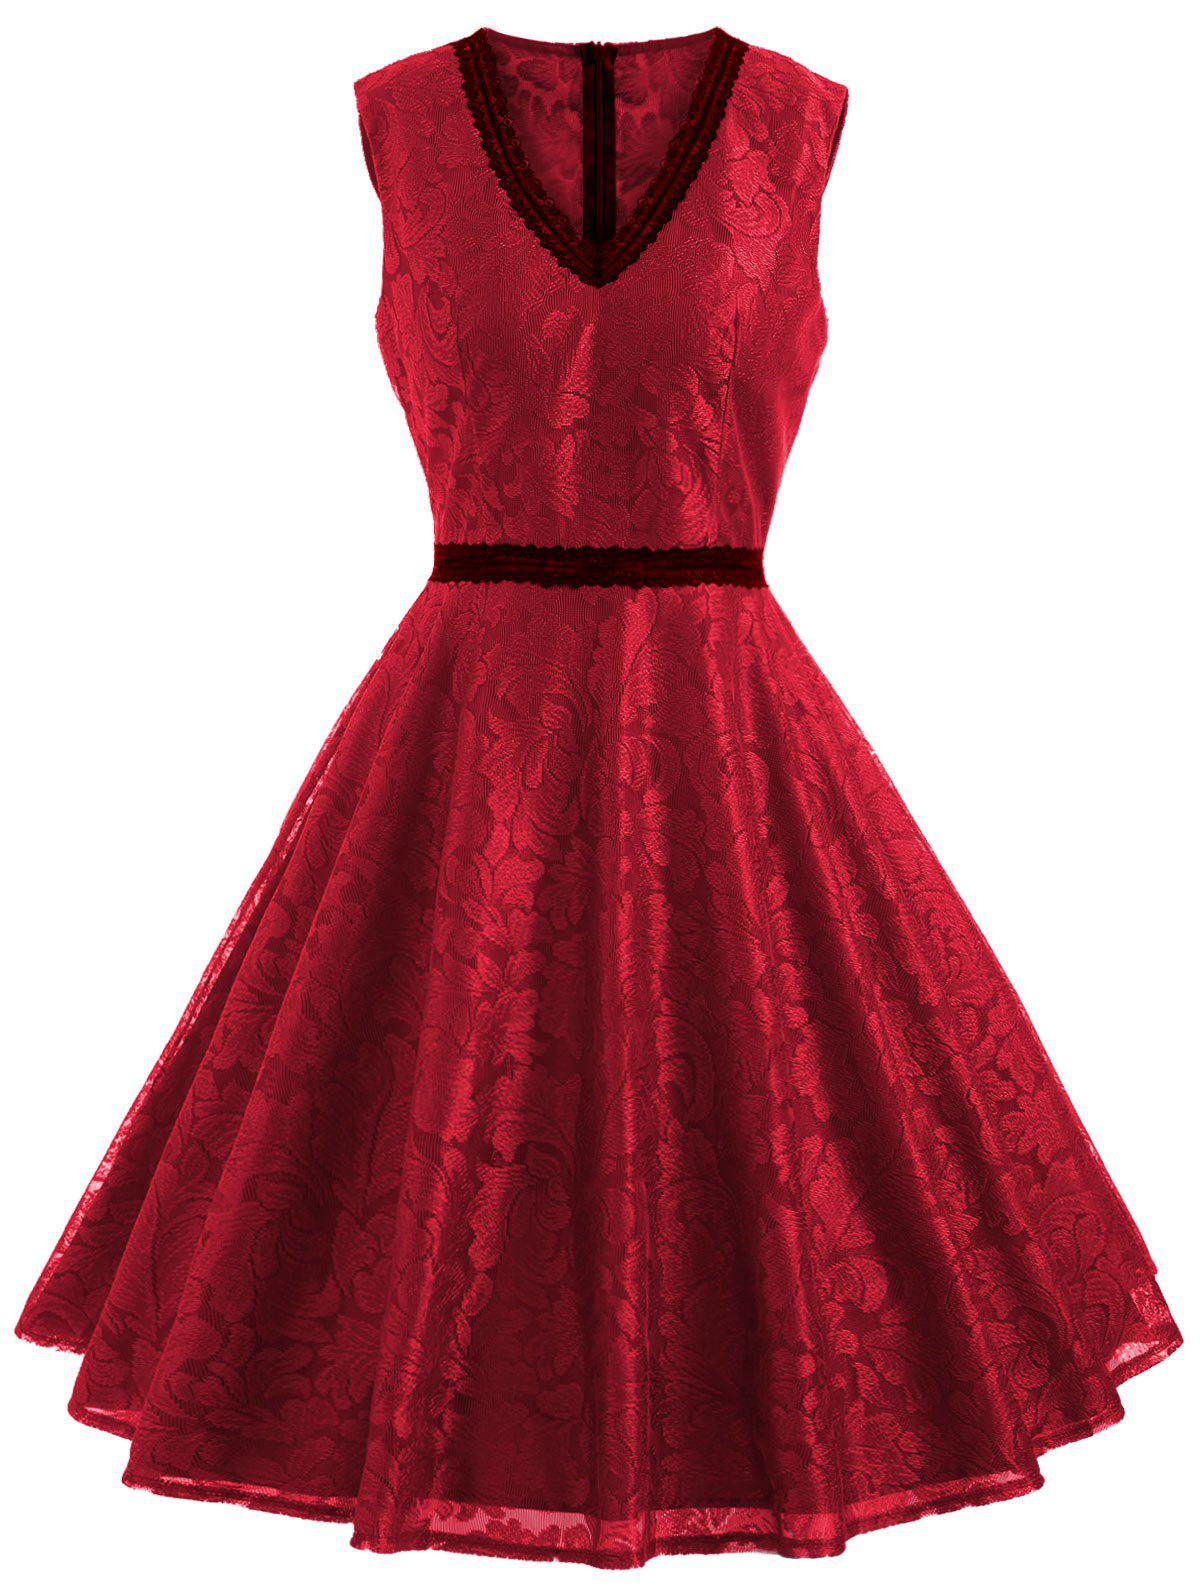 Sleeveless Leaf Lace Dress - RED L